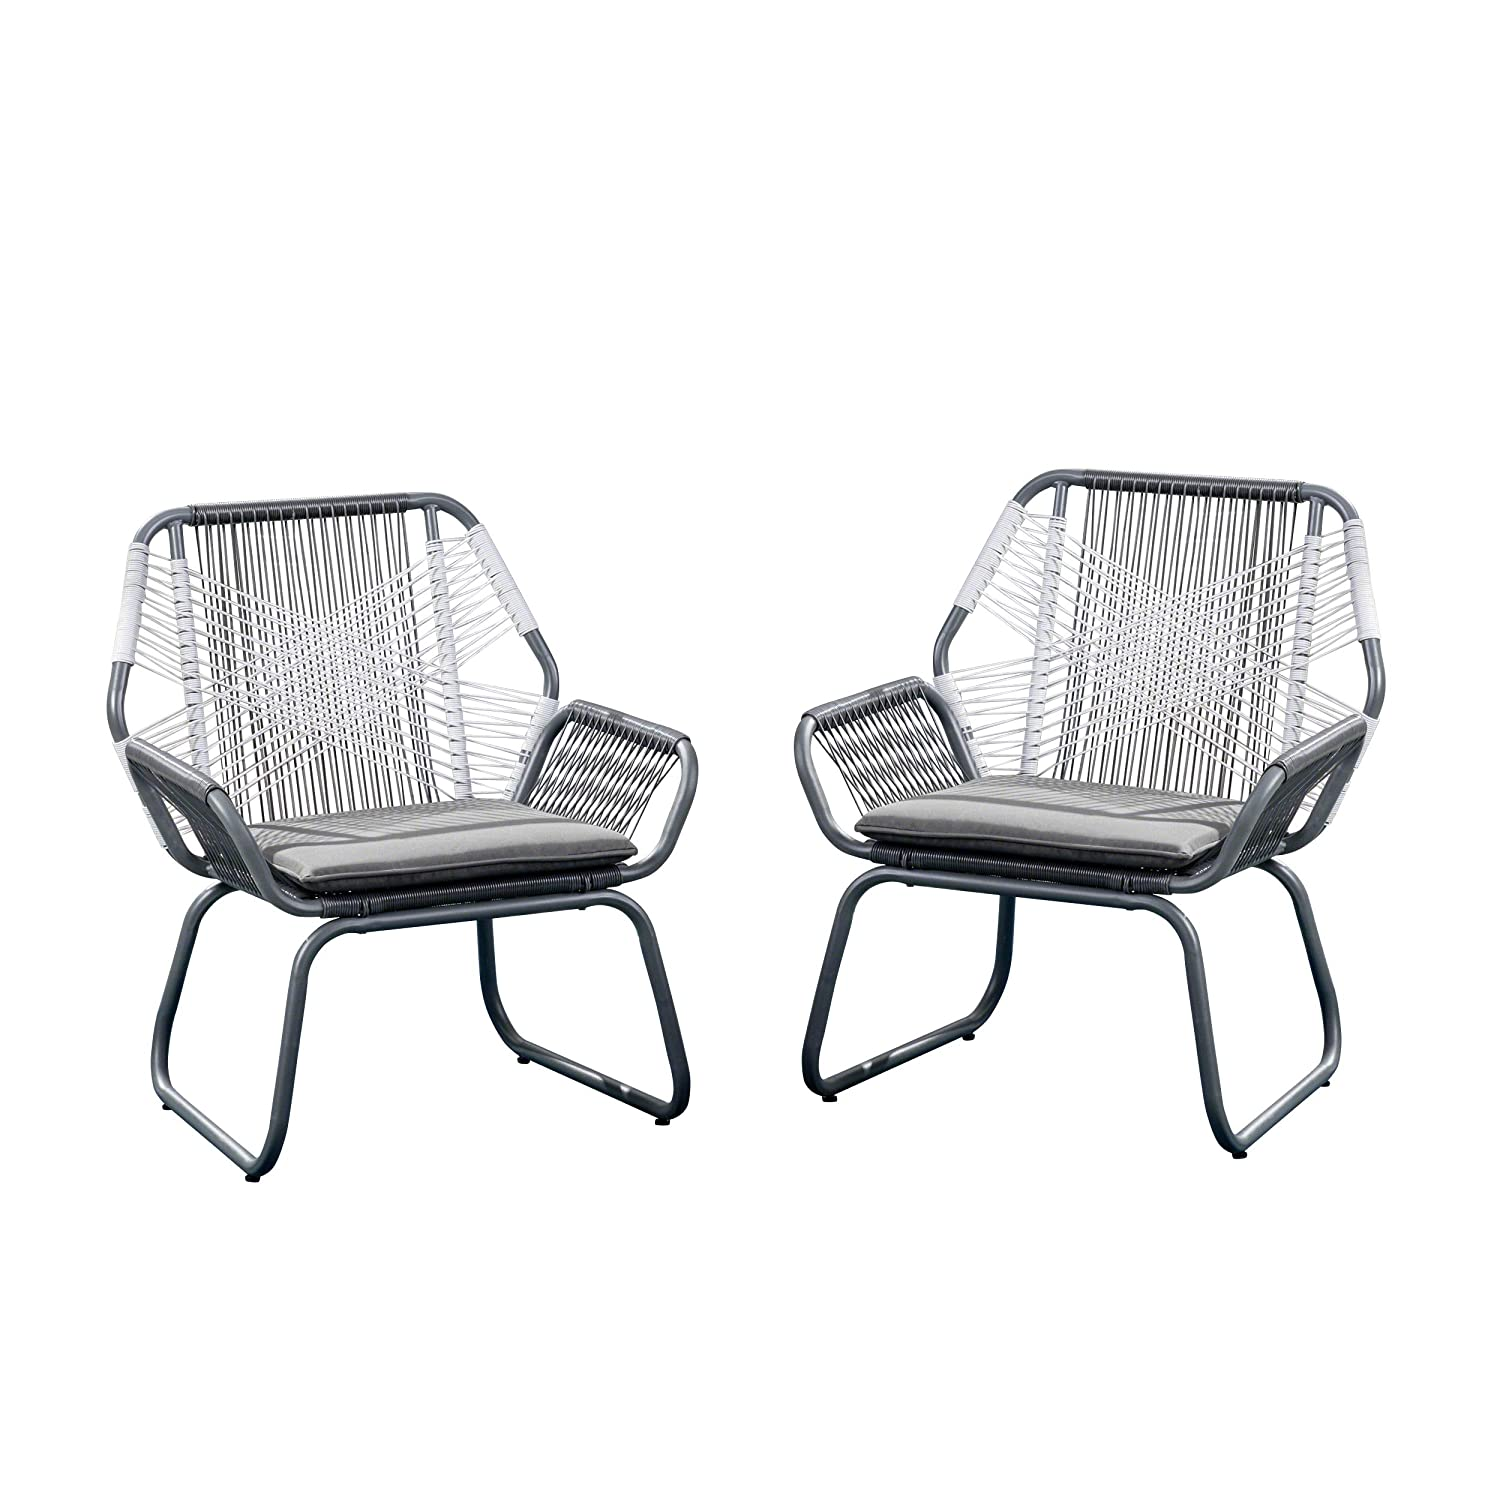 Christopher Knight Home 305086 Lydia Outdoor Wicker Club Chair (Set of 2), Gray and White